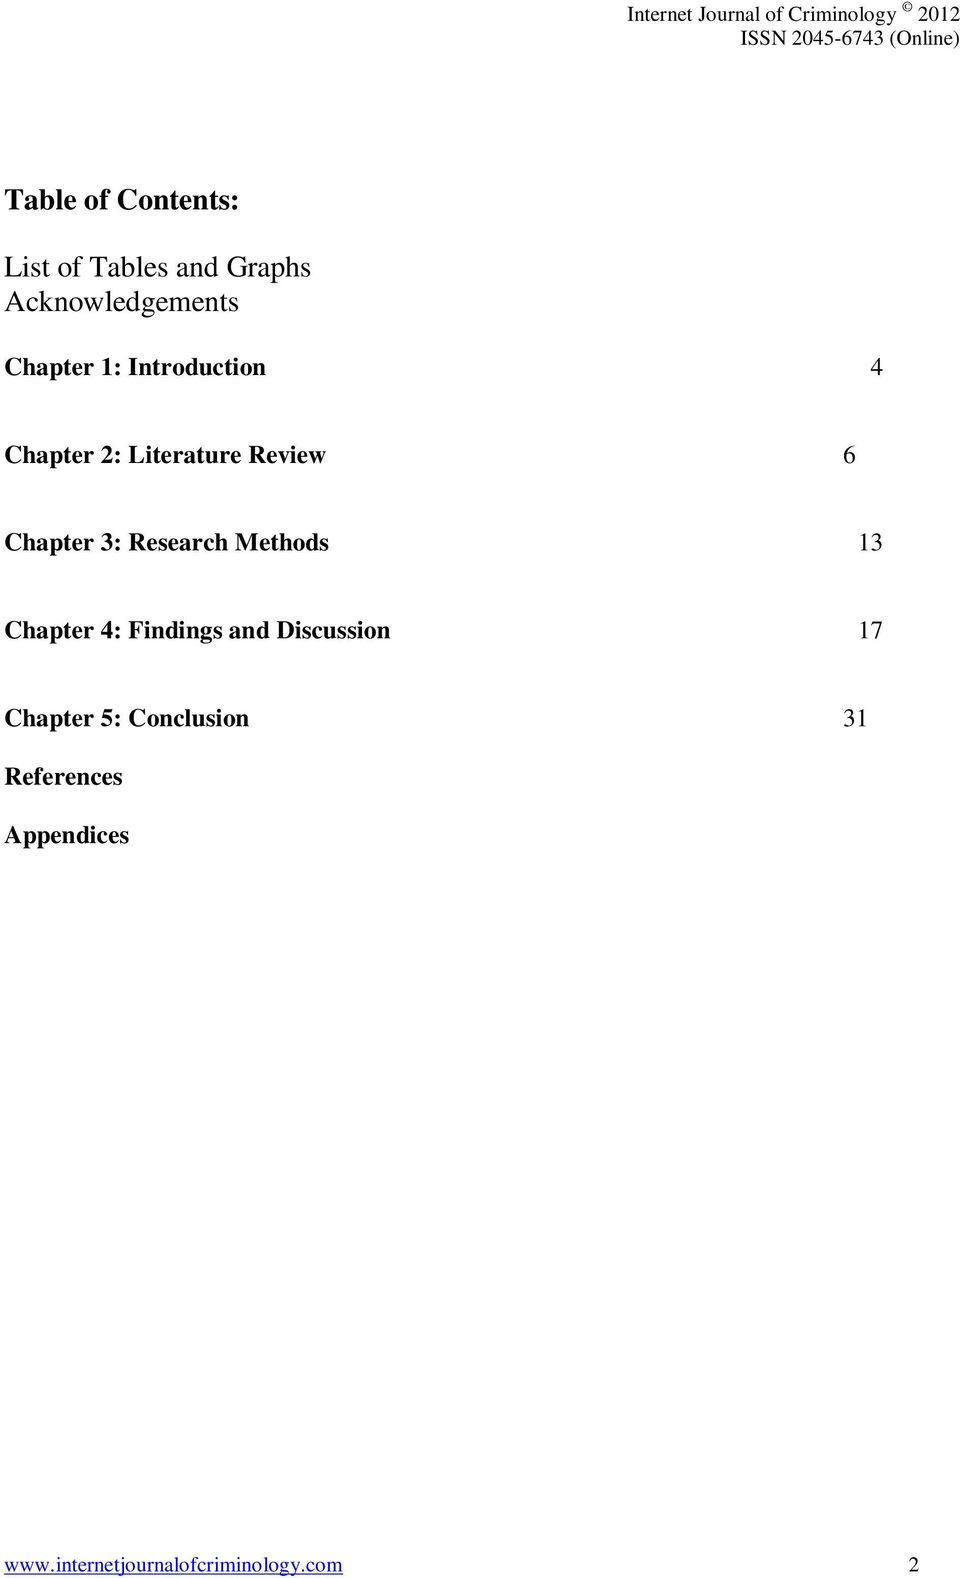 Research Methods 13 Chapter 4: Findings and Discussion 17 Chapter 5: